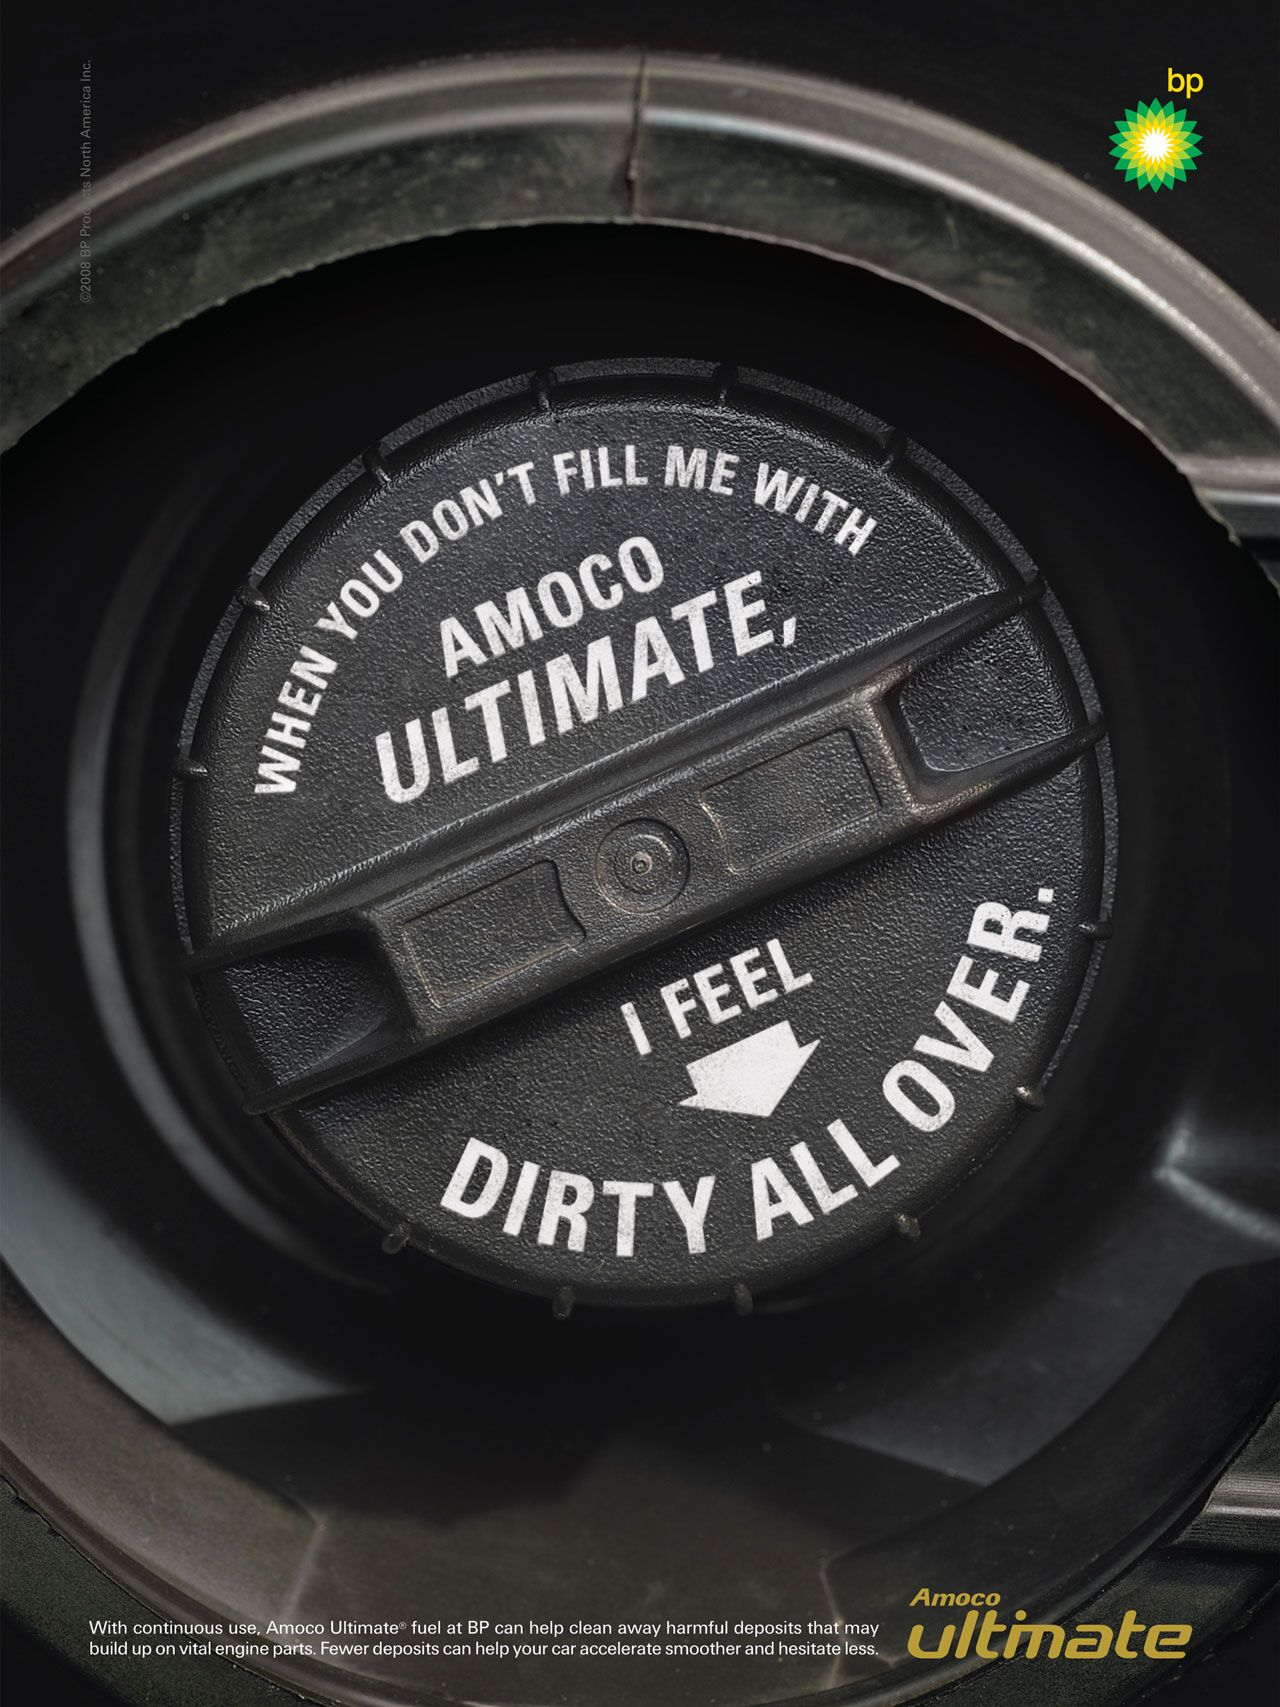 When you don't fill me with Amoco Ultimate, I feel dirty all over. With continuous use, Amoco Ultimate fuel at BP can help clean away harmful deposits that may build up on vital engine parts. Fewer deposits can help your car accelerate smoother and hesitate less.